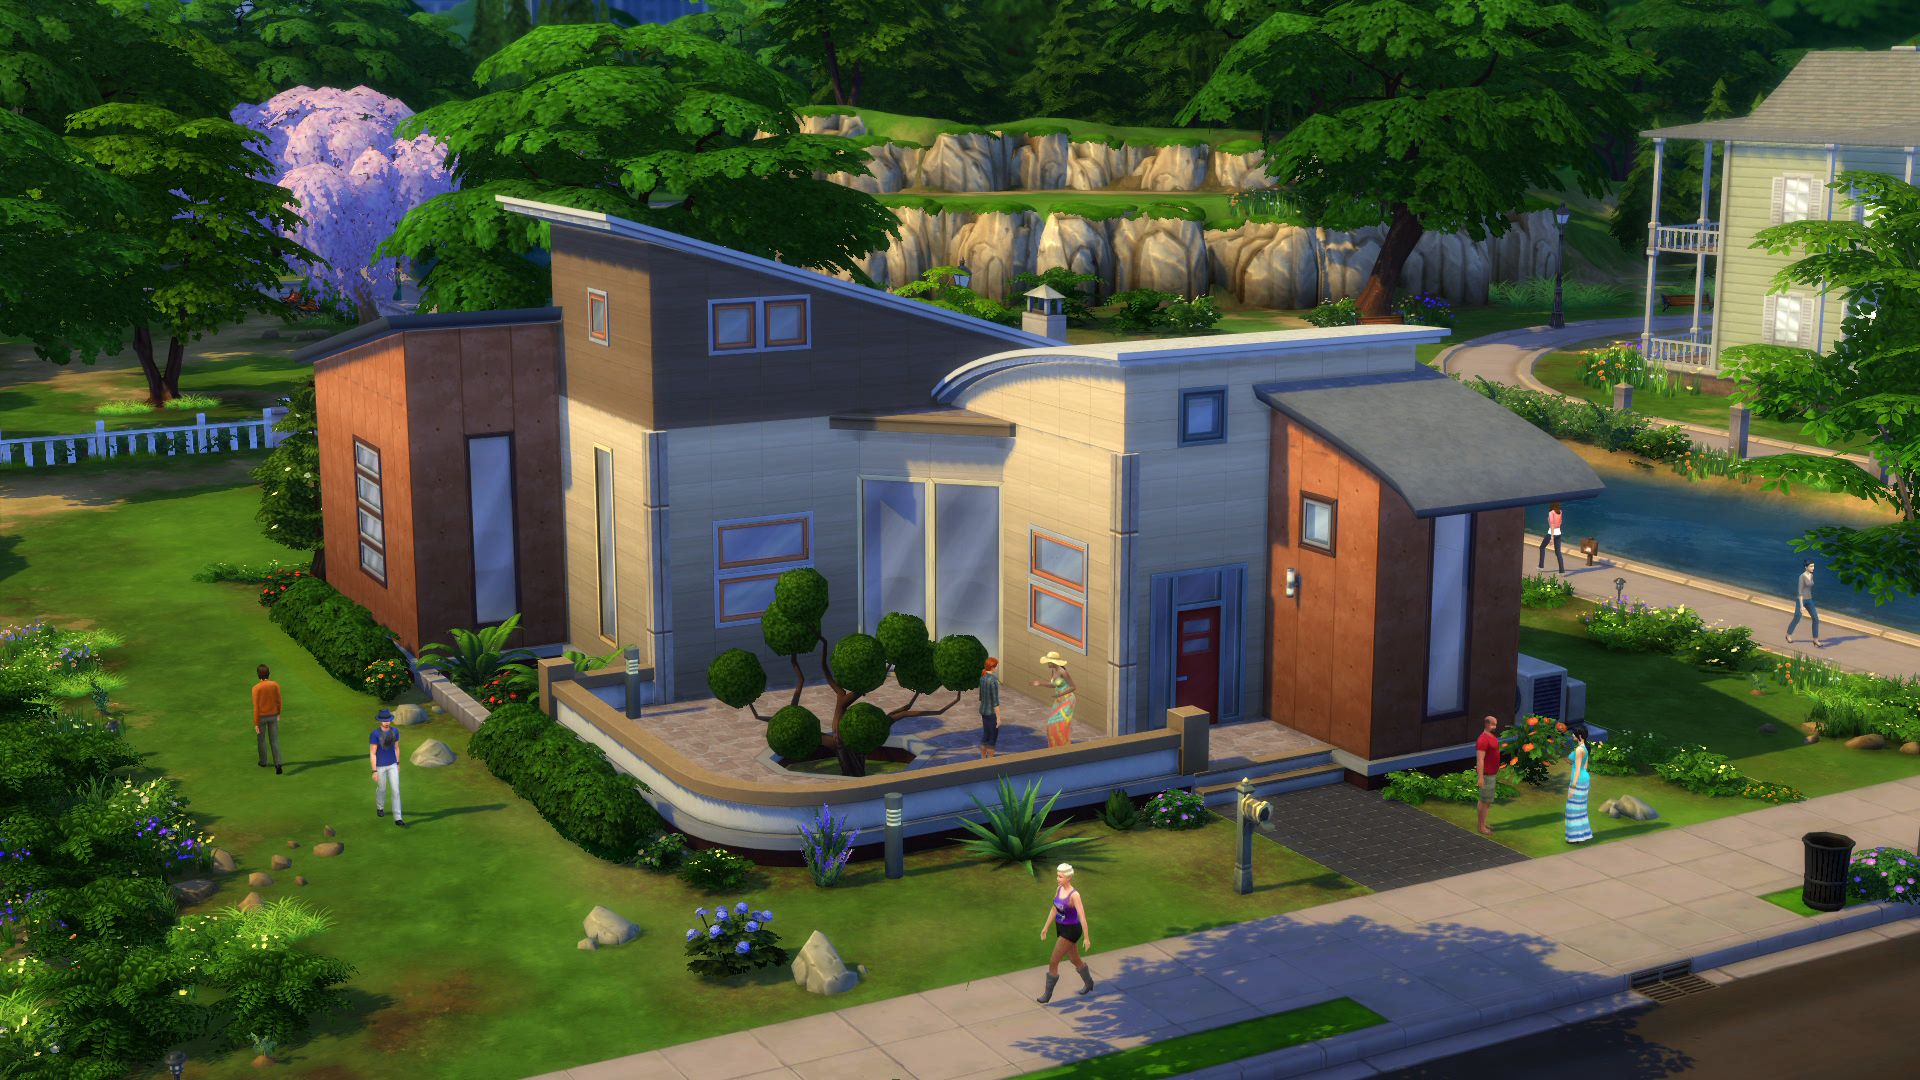 The sims 4 review toying with emotions shacknews Create a house online game